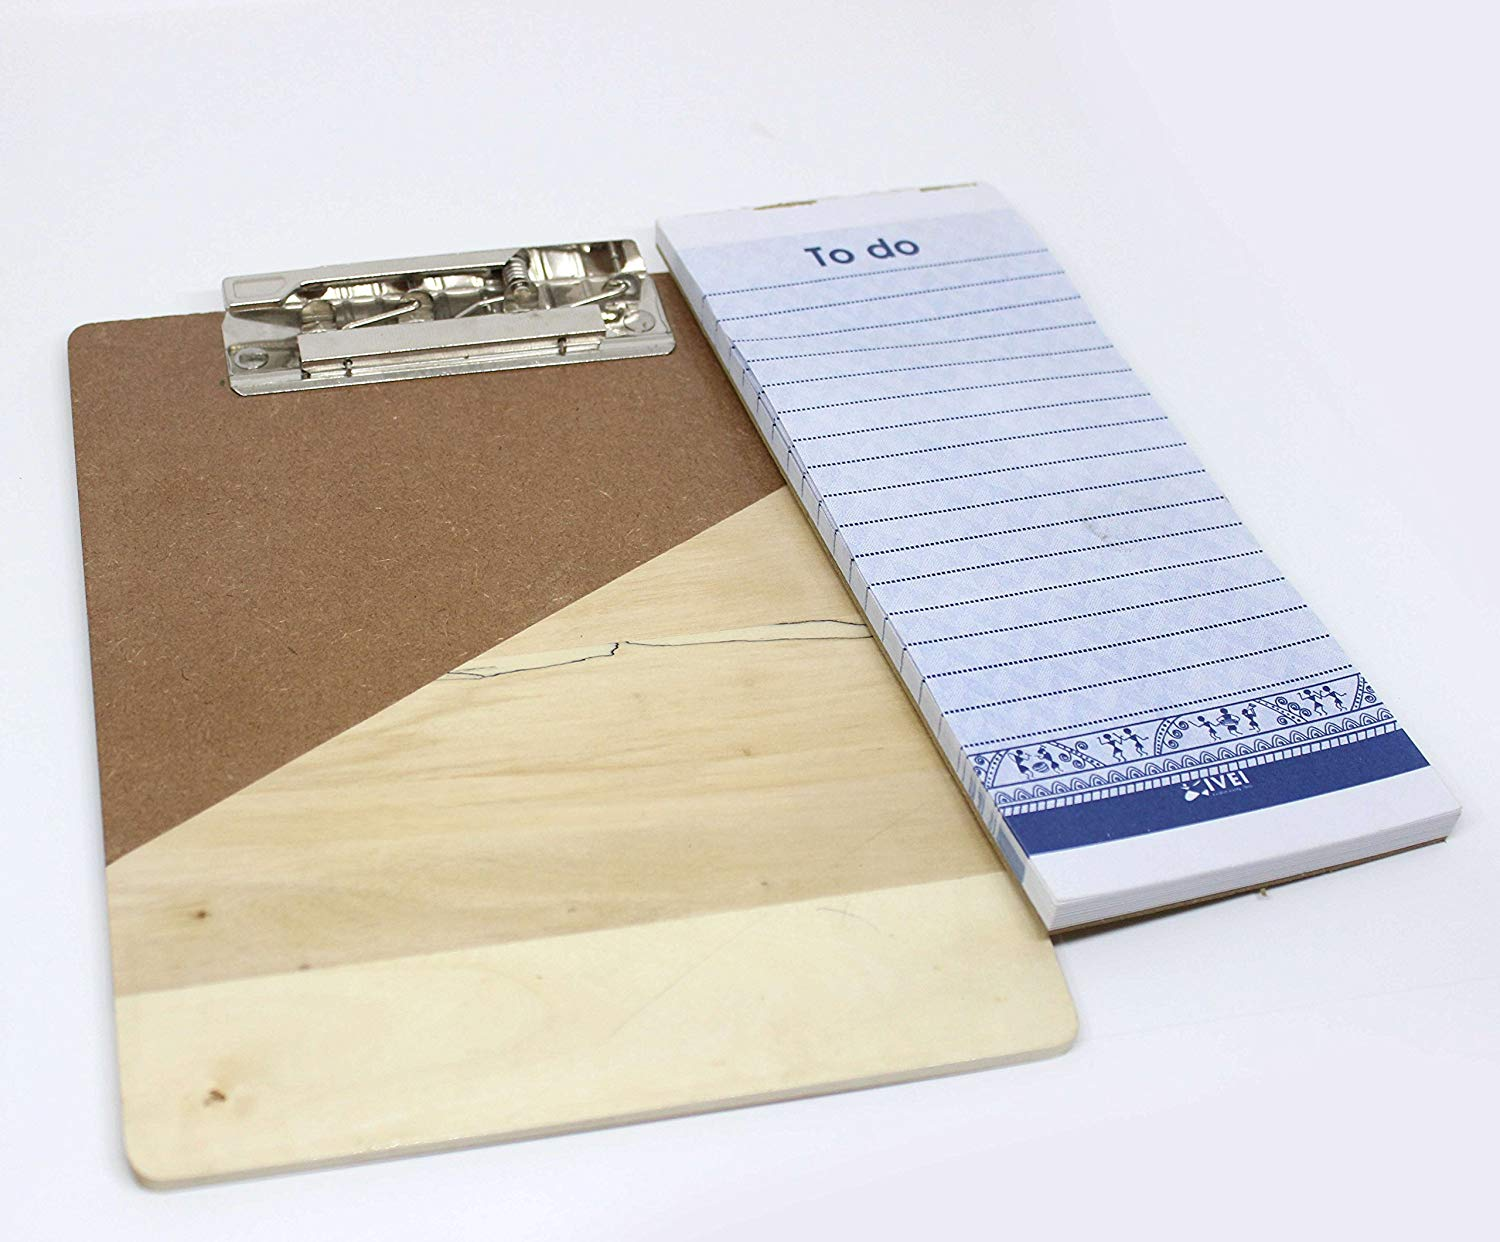 Wooden clip pad for your desk - memo pad with 50 sheets included - a5 size